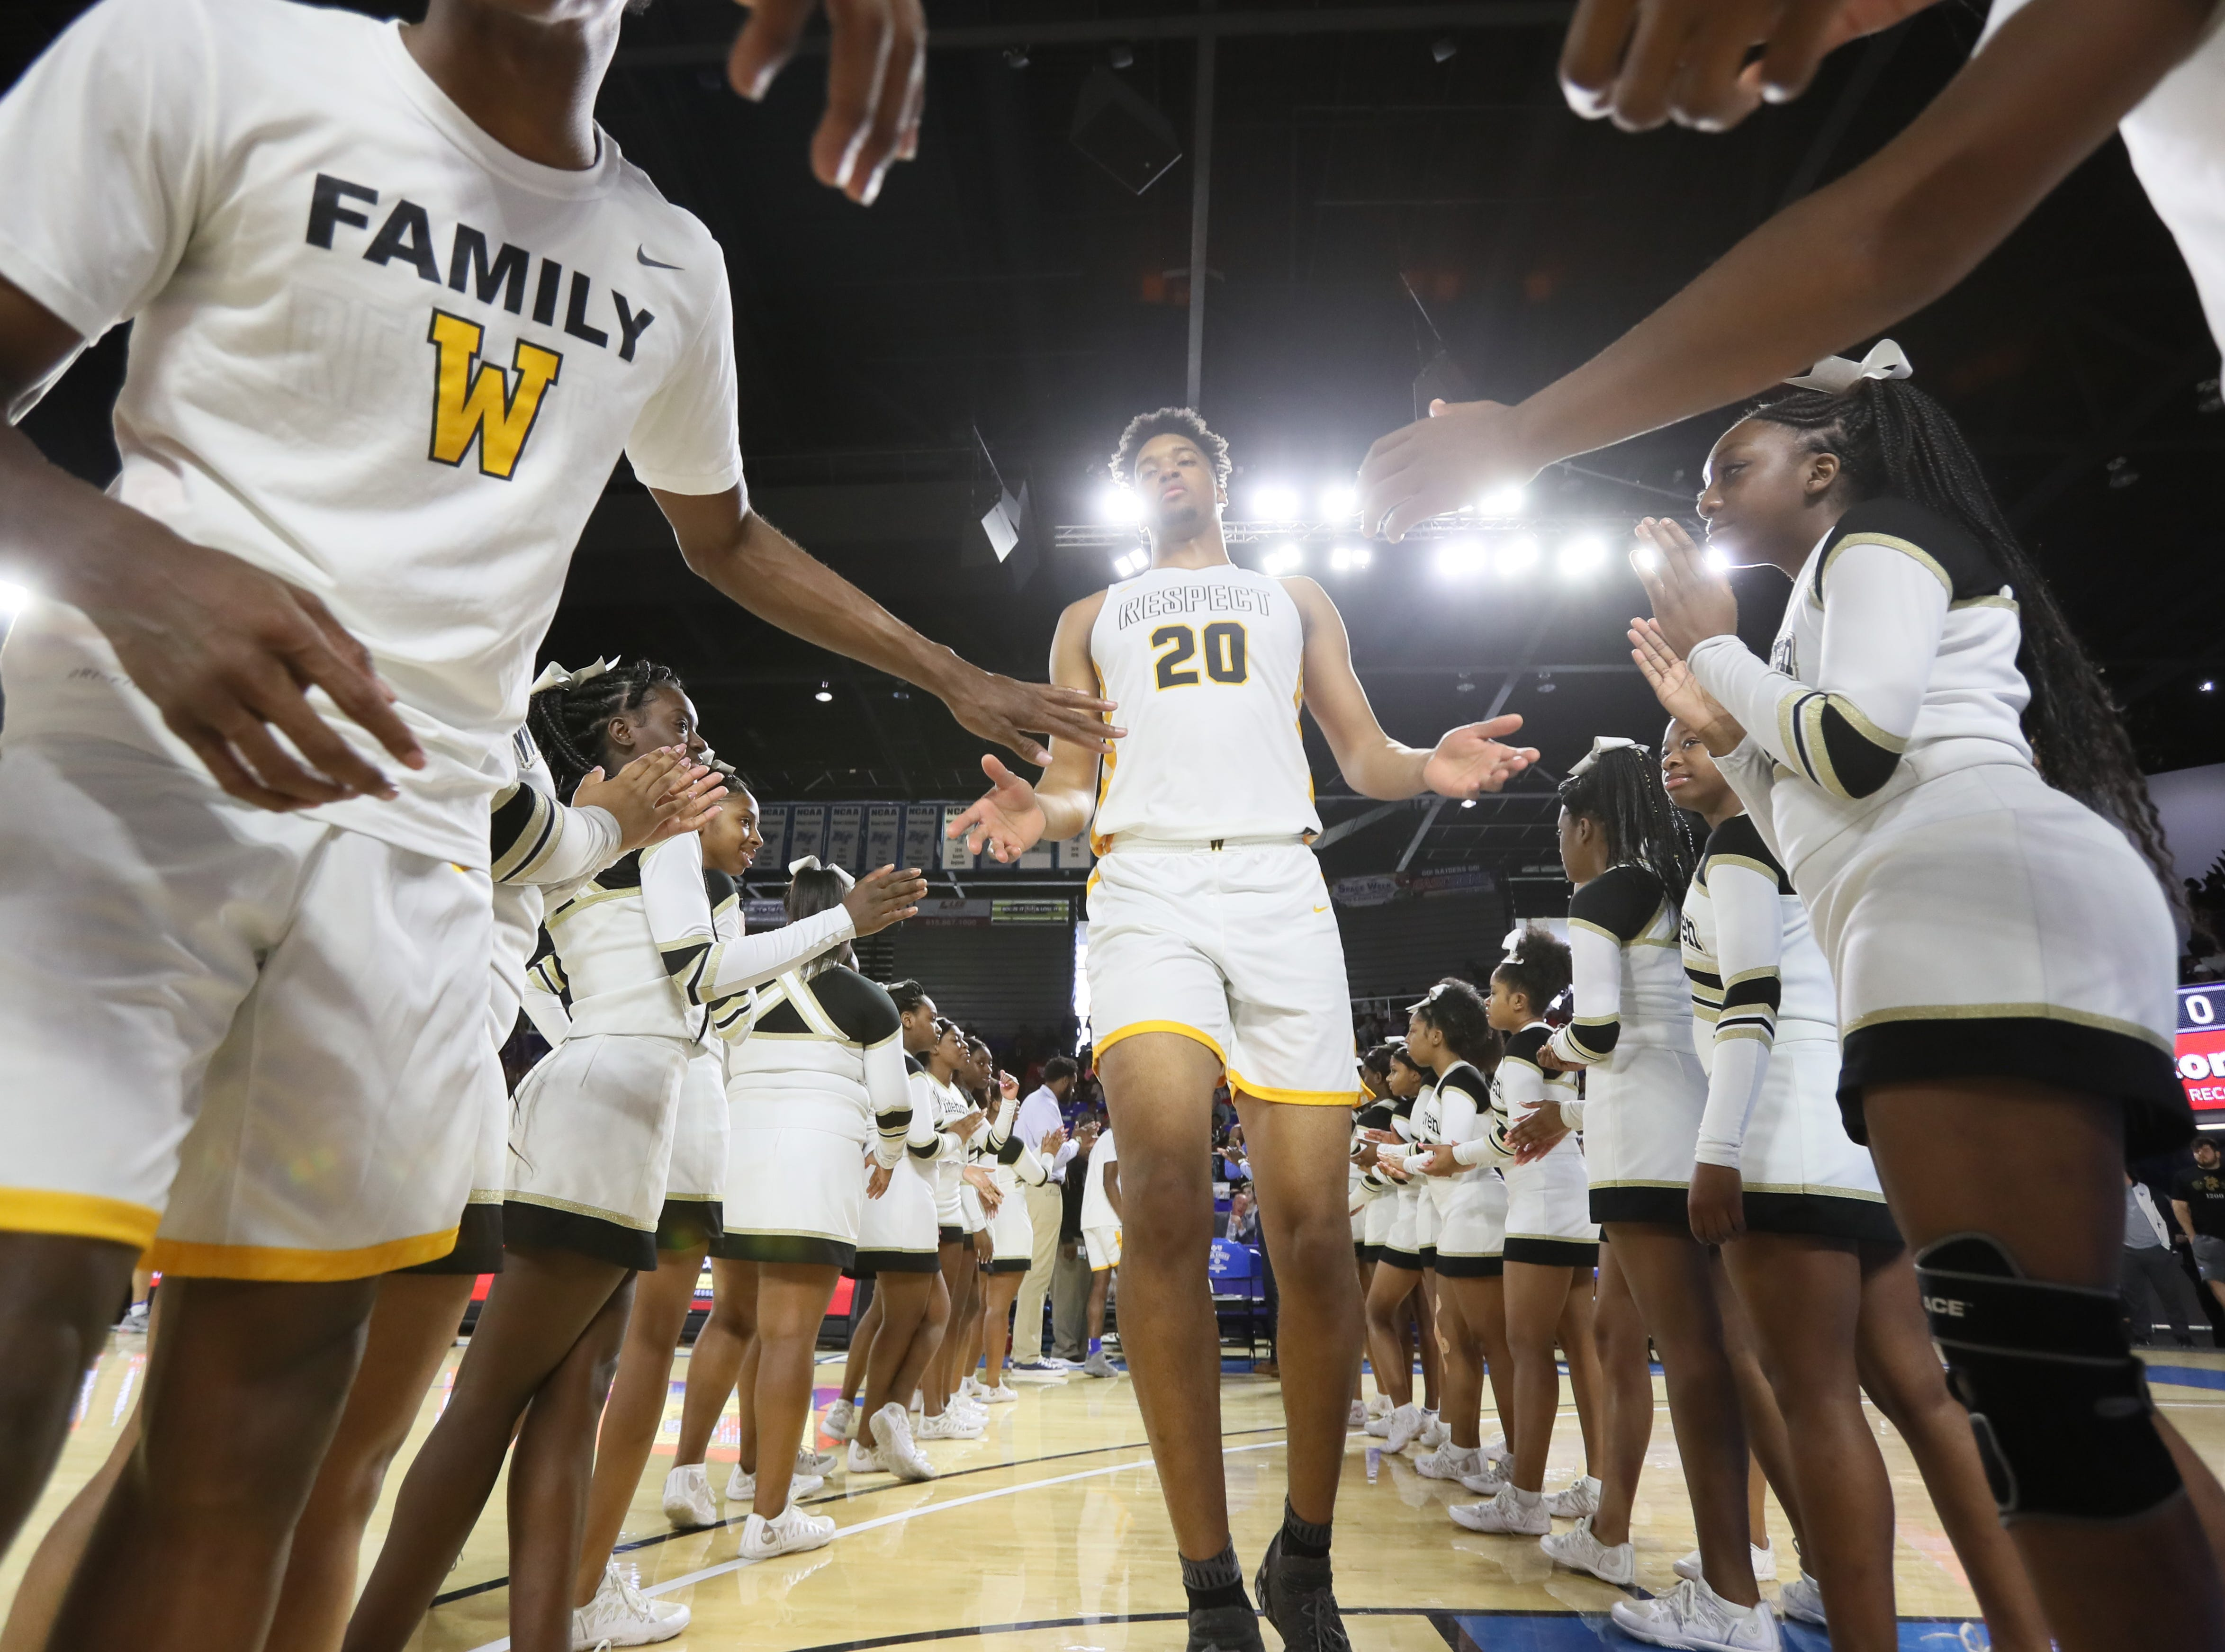 Whitehaven's Jordan Wilmore is introduced before they take on Bearden during the Class AAA boys basketball state semifinal at the Murphy Center in Murfreesboro, Tenn. on Thursday, March 14, 2019.